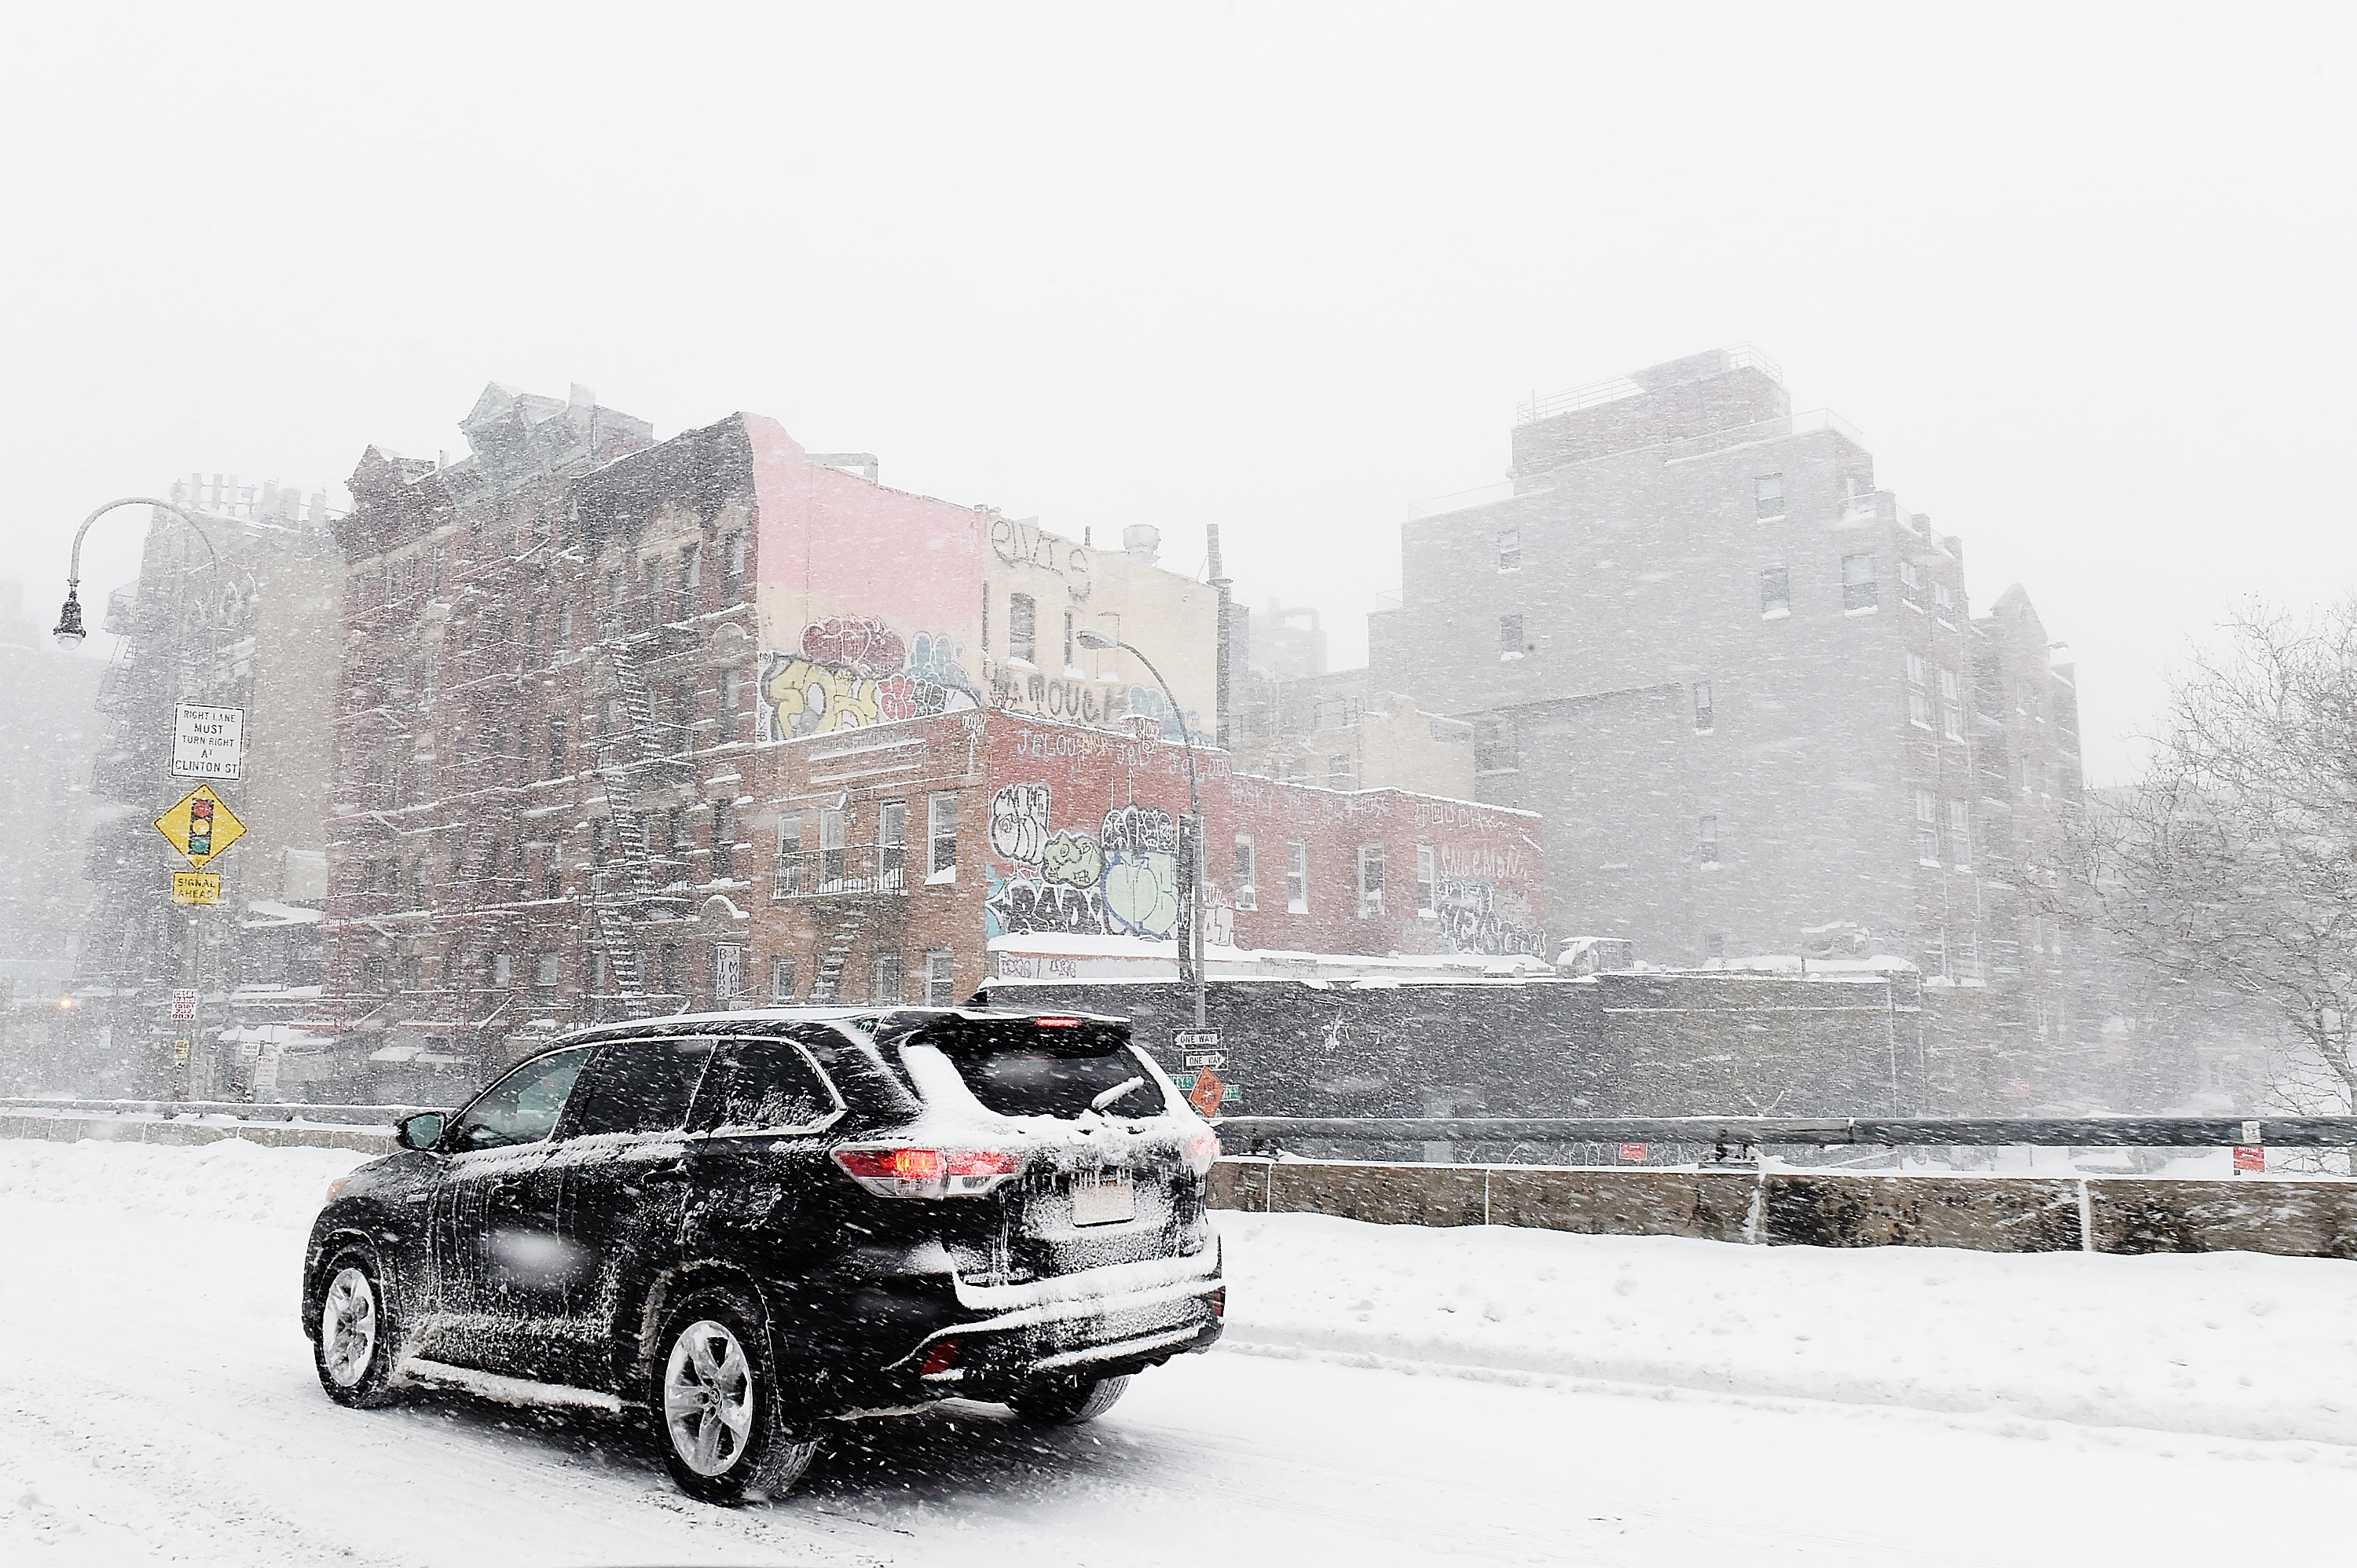 Massive Winter Storm Brings Snow And Heavy Winds Across Large Swath Of Eastern Seaboard